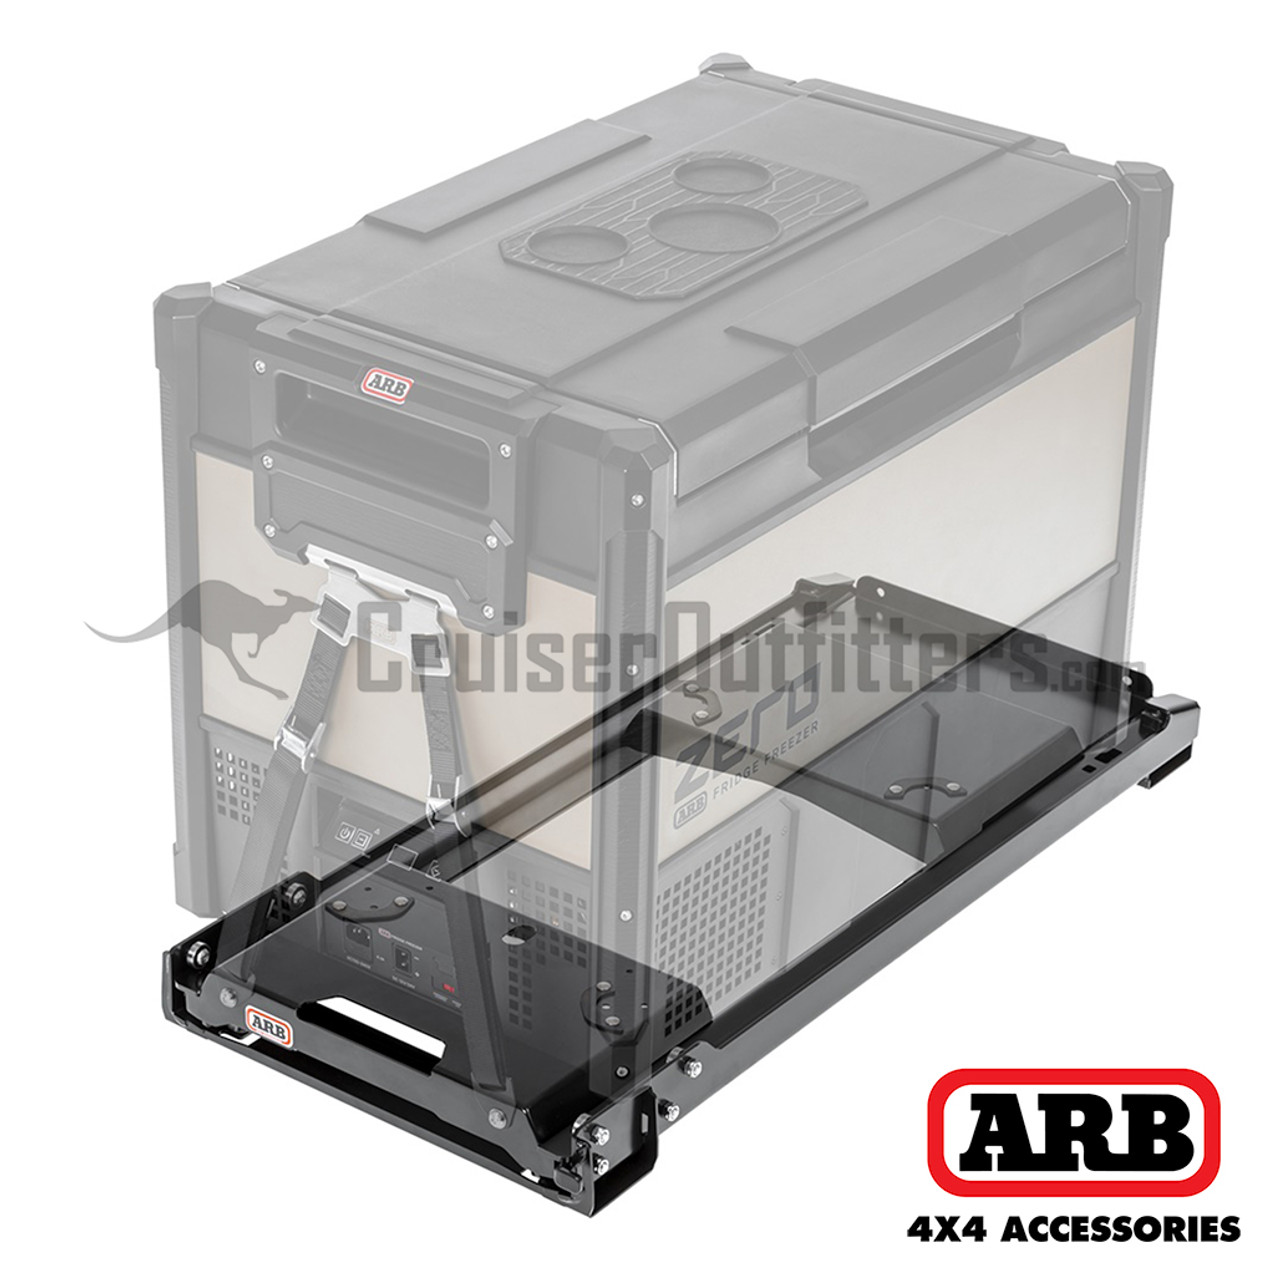 ARB Zero Fridge Slide 63QT, 73QT & 78QT (ARB10900048)